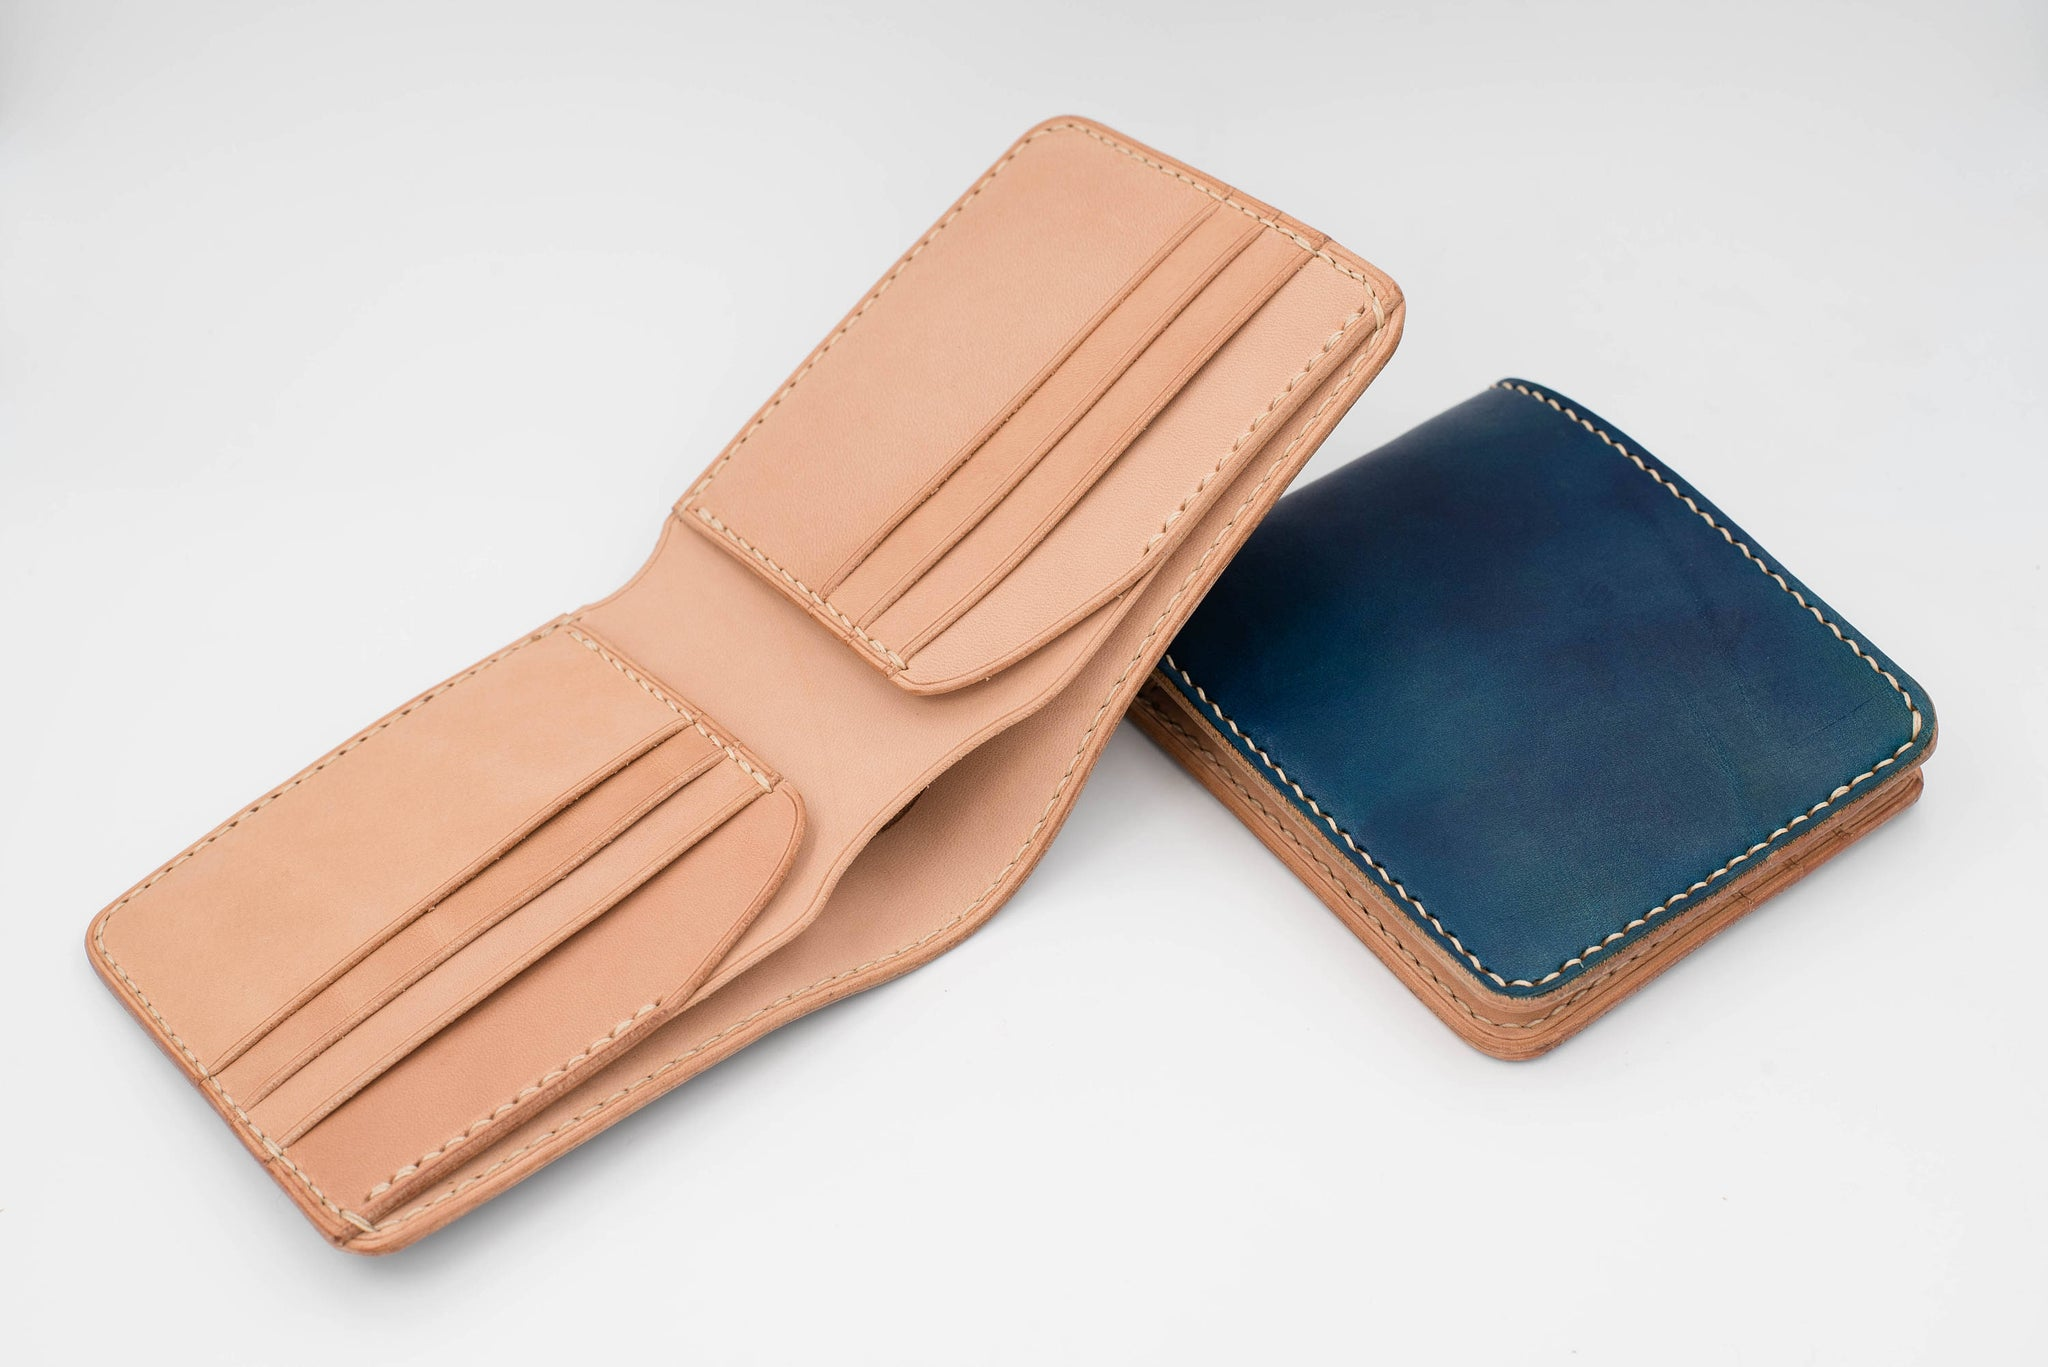 6-Slot Navy Blue & Natural Leather Billfold Wallet for men